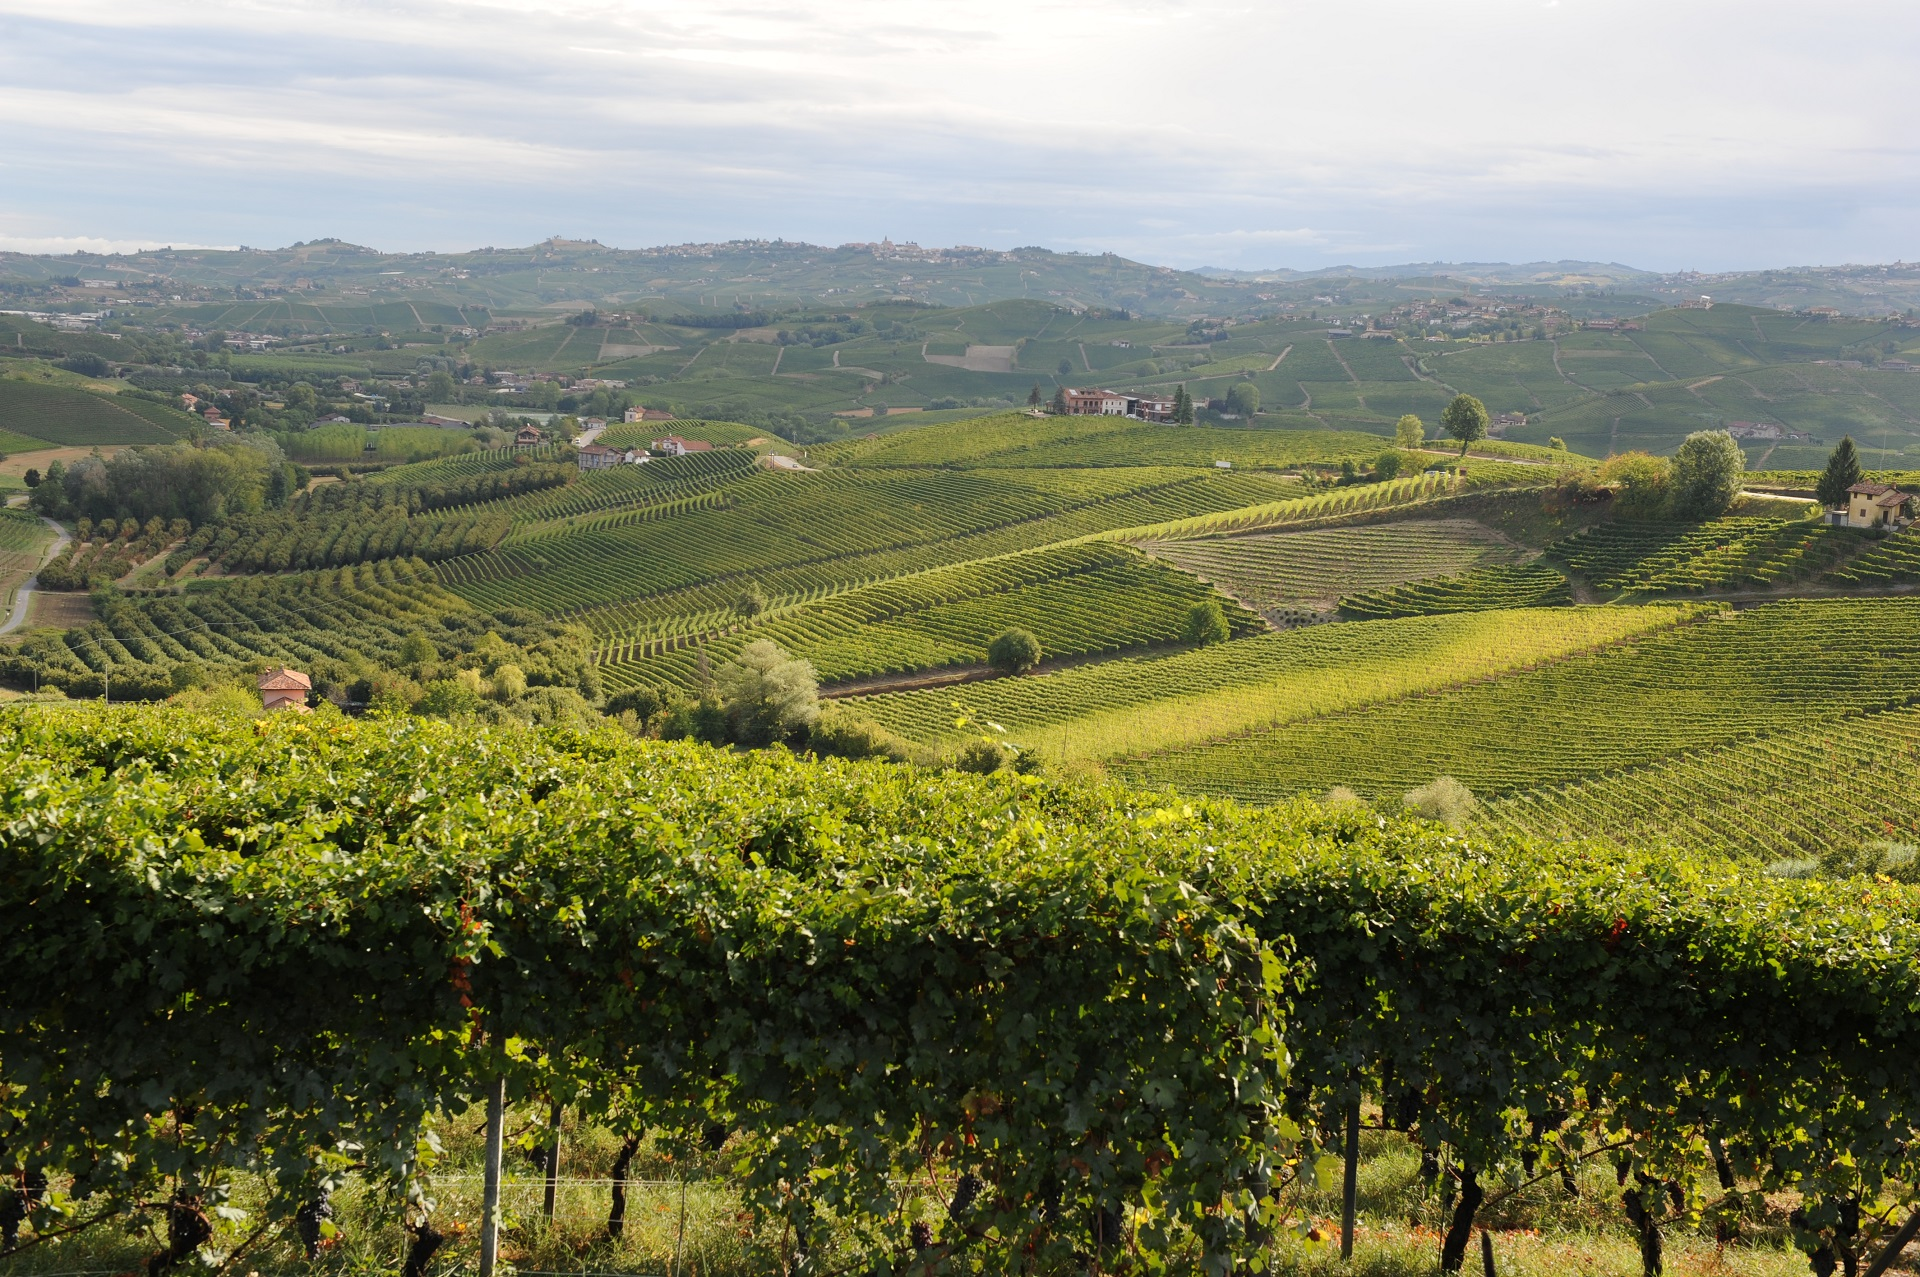 Vineyard in Langhe hills